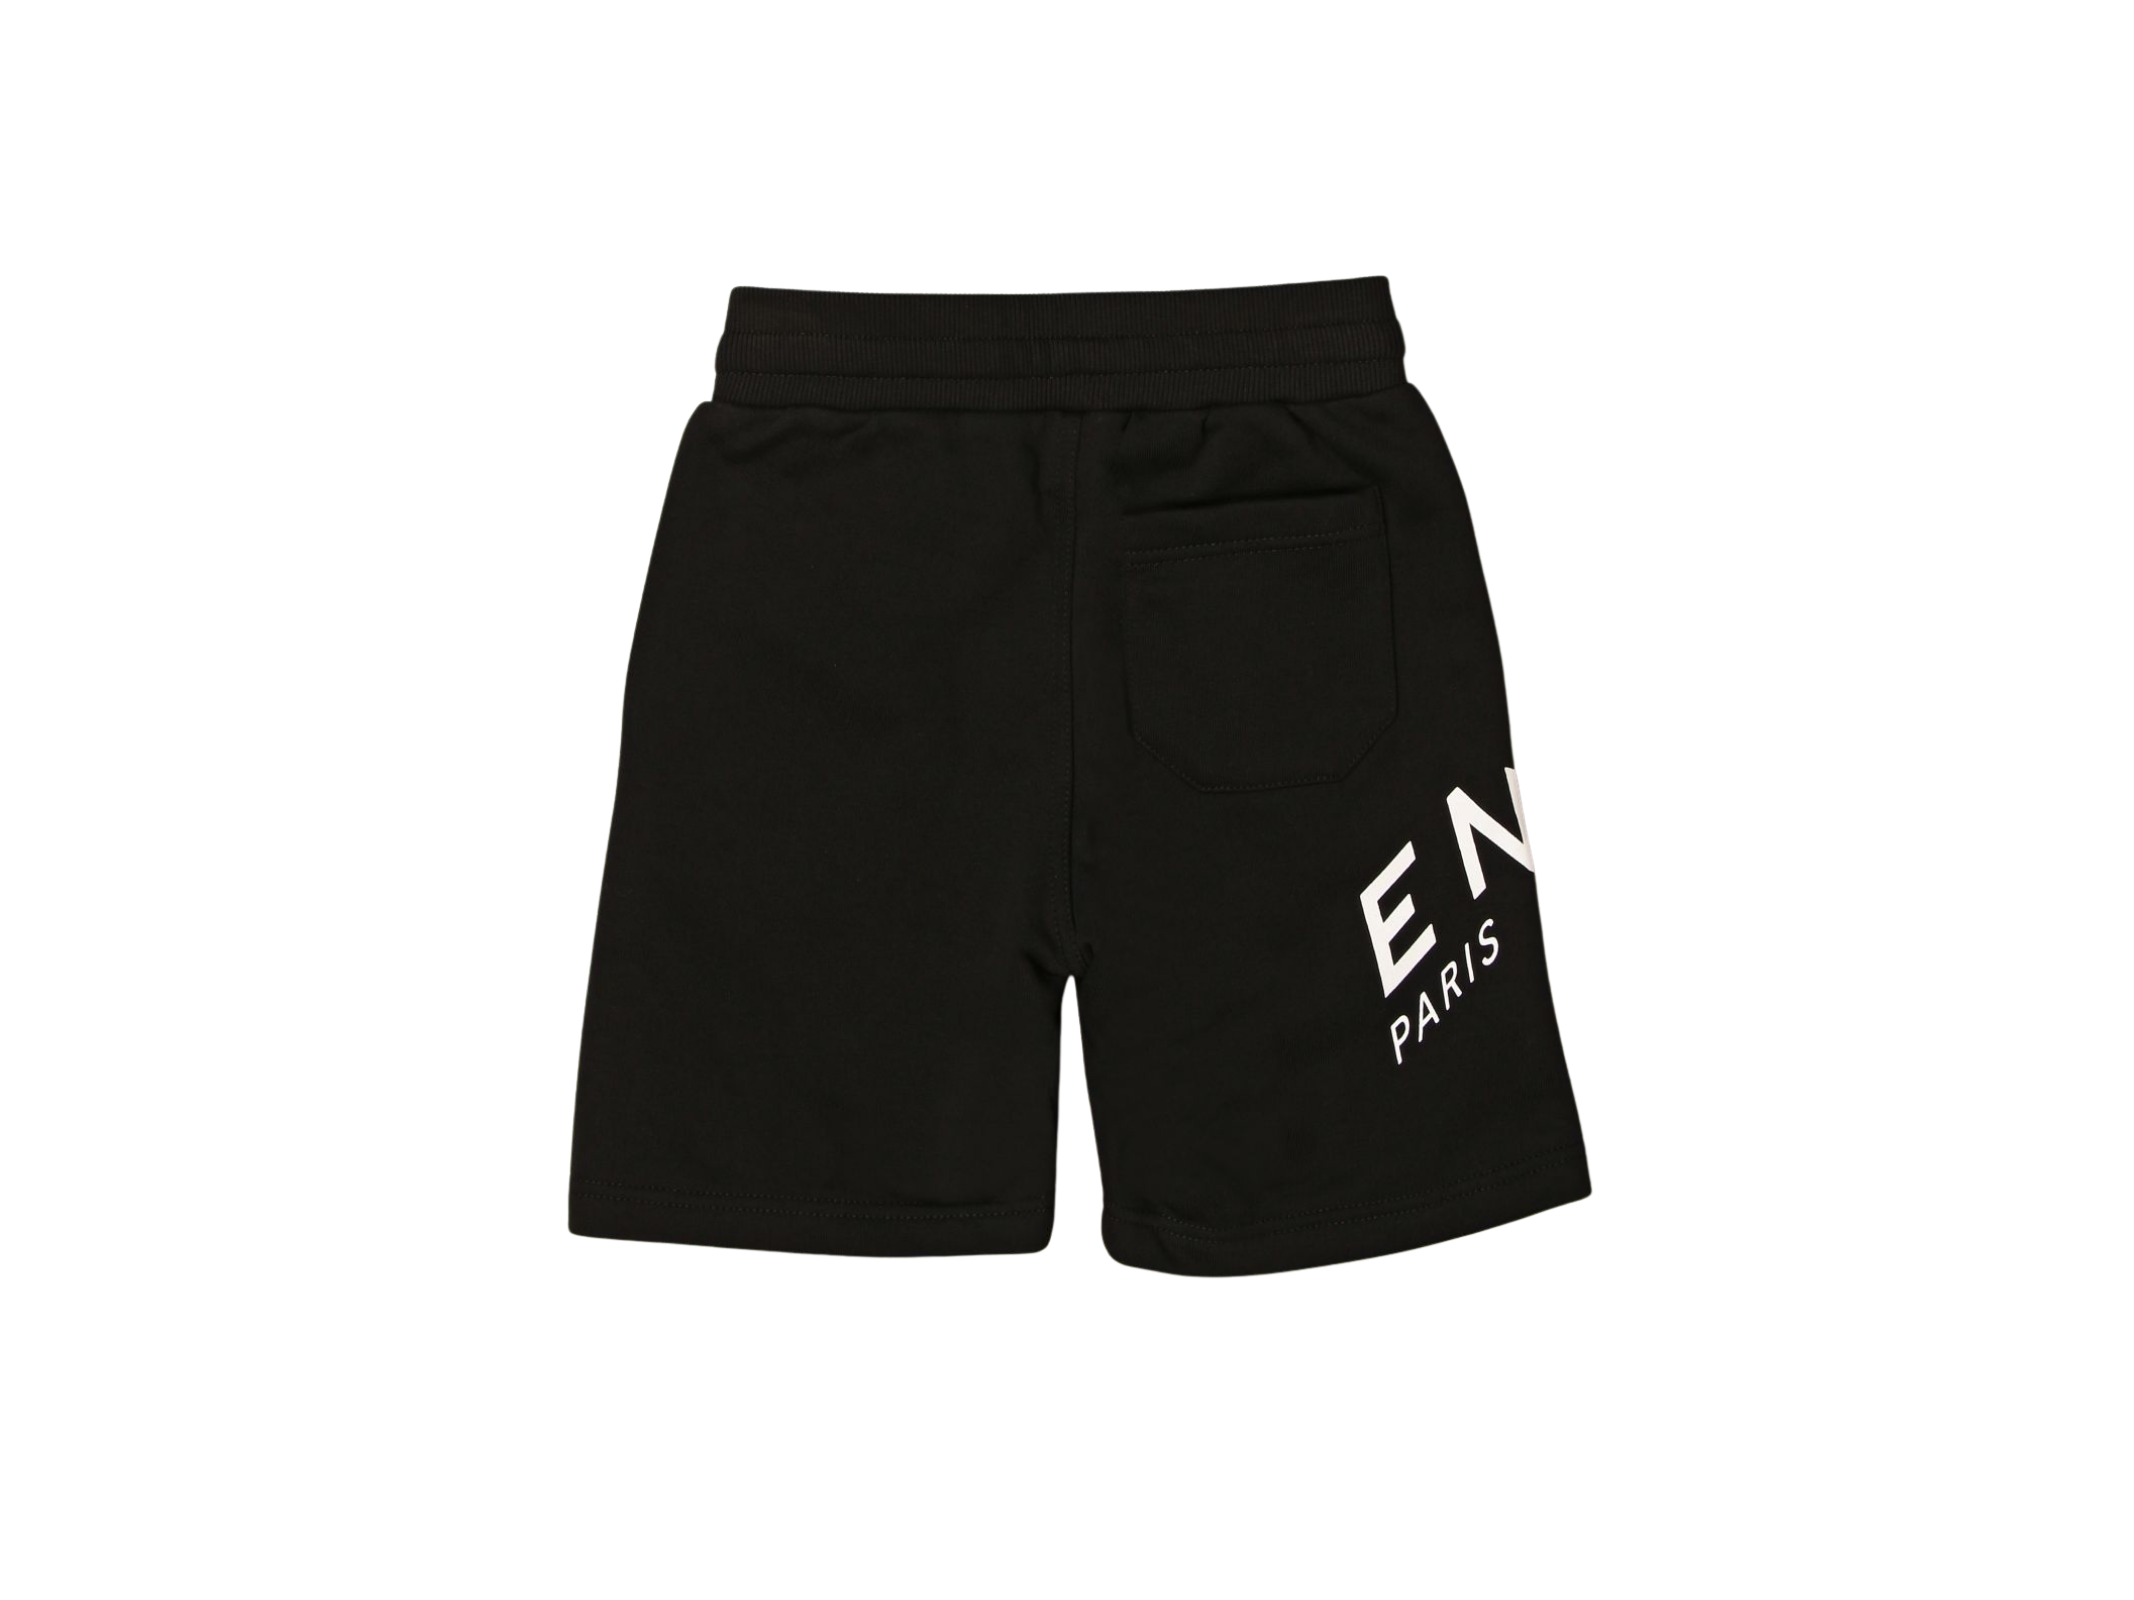 GIVENCHY KIDS |  | H25119*NERO